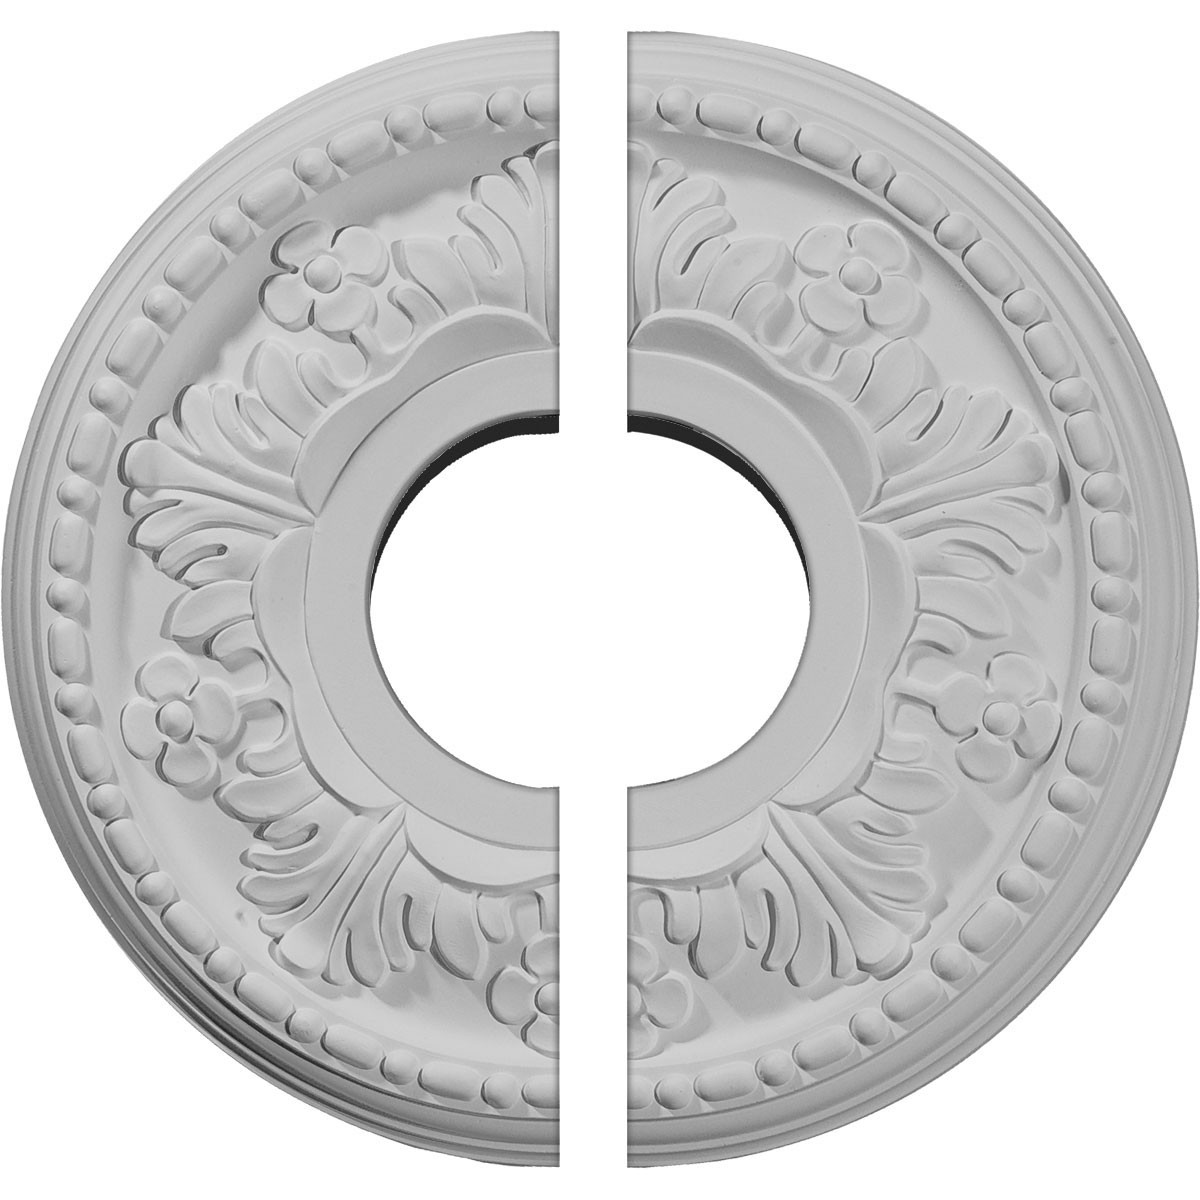 """EM-CM11HE2 - 11 7/8""""OD x 3 5/8""""ID x 7/8""""P Helene Ceiling Medallion, Two Piece (Fits Canopies up to 5 1/4"""")"""